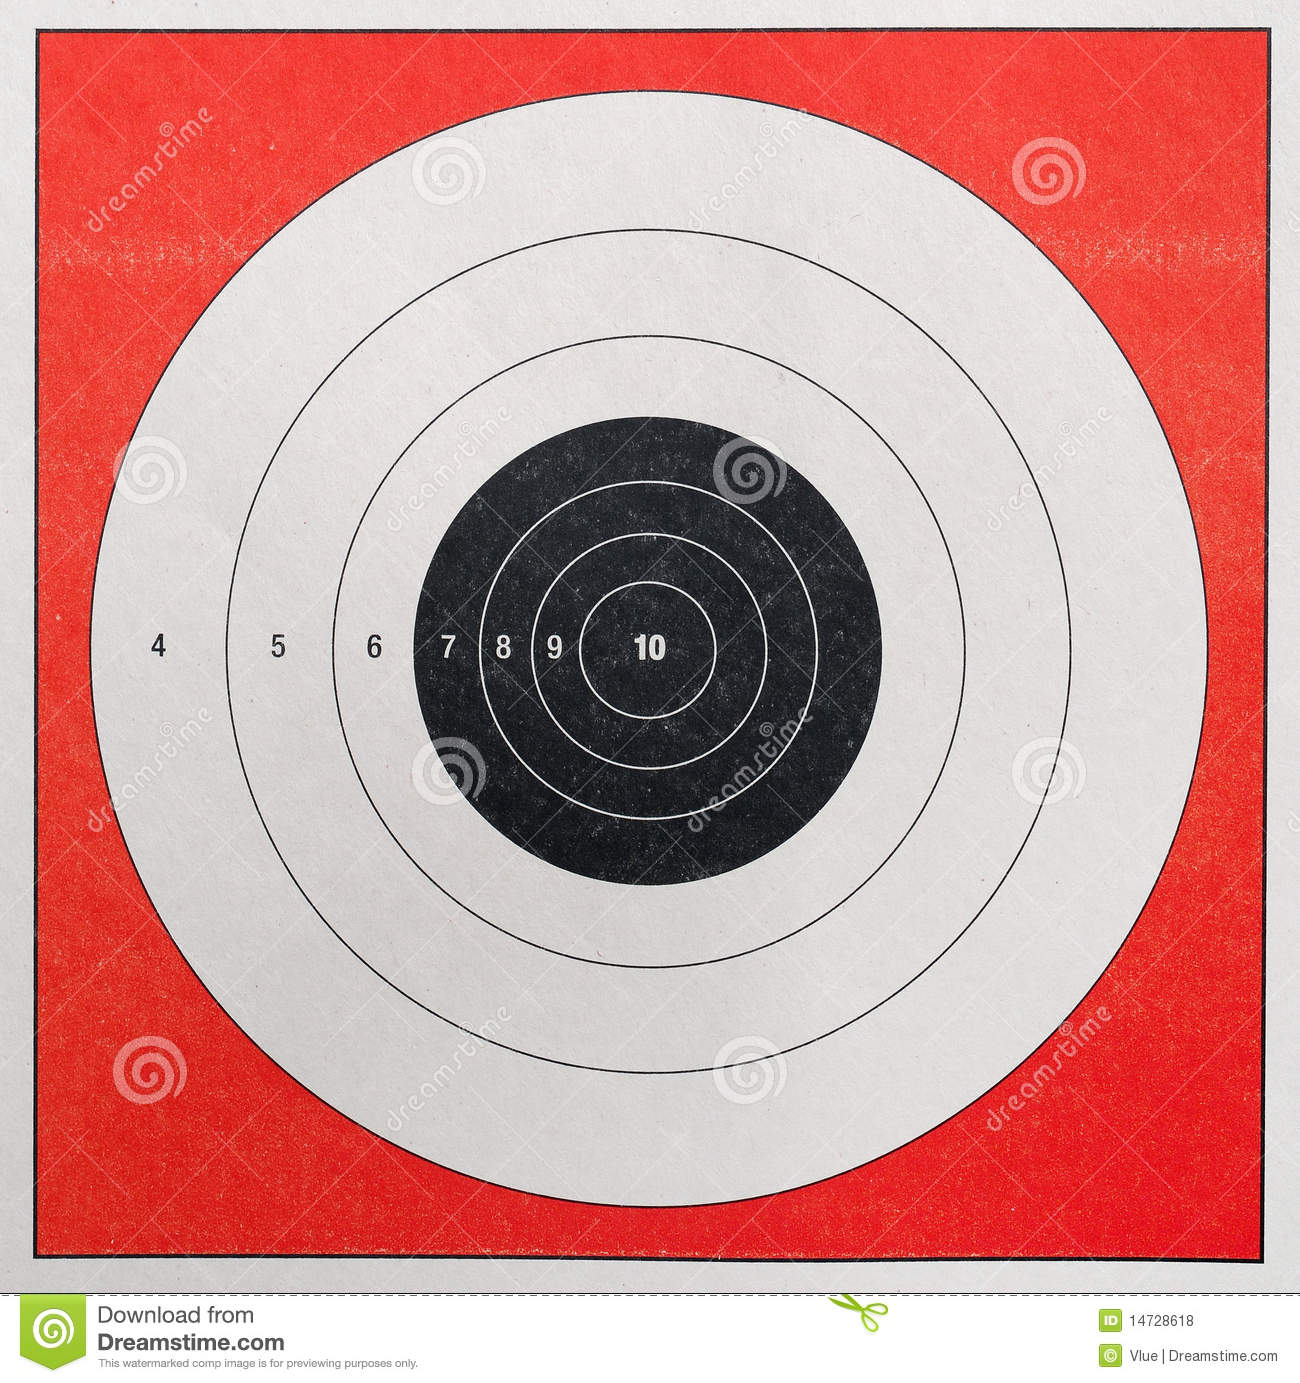 Closeup of a practice target used for shooting.